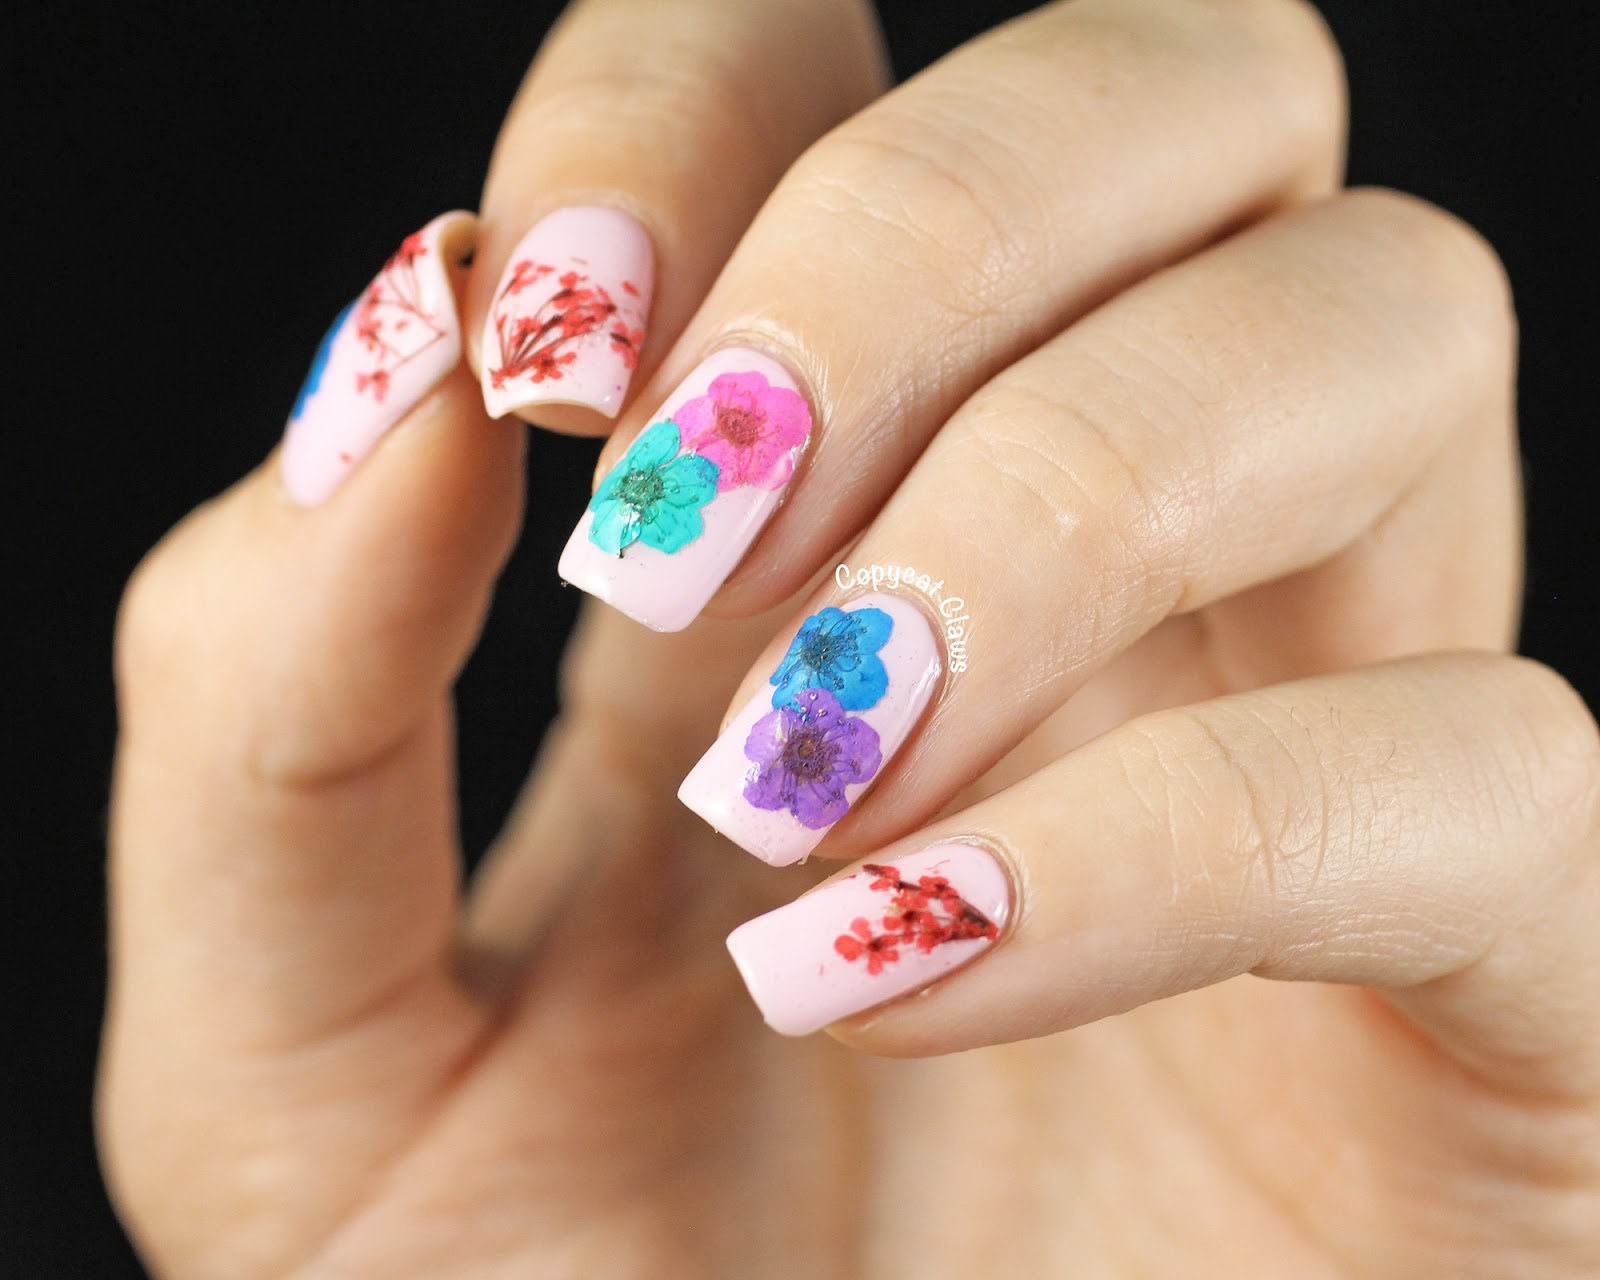 Dried Flower Nail Art | The Fashion Foot